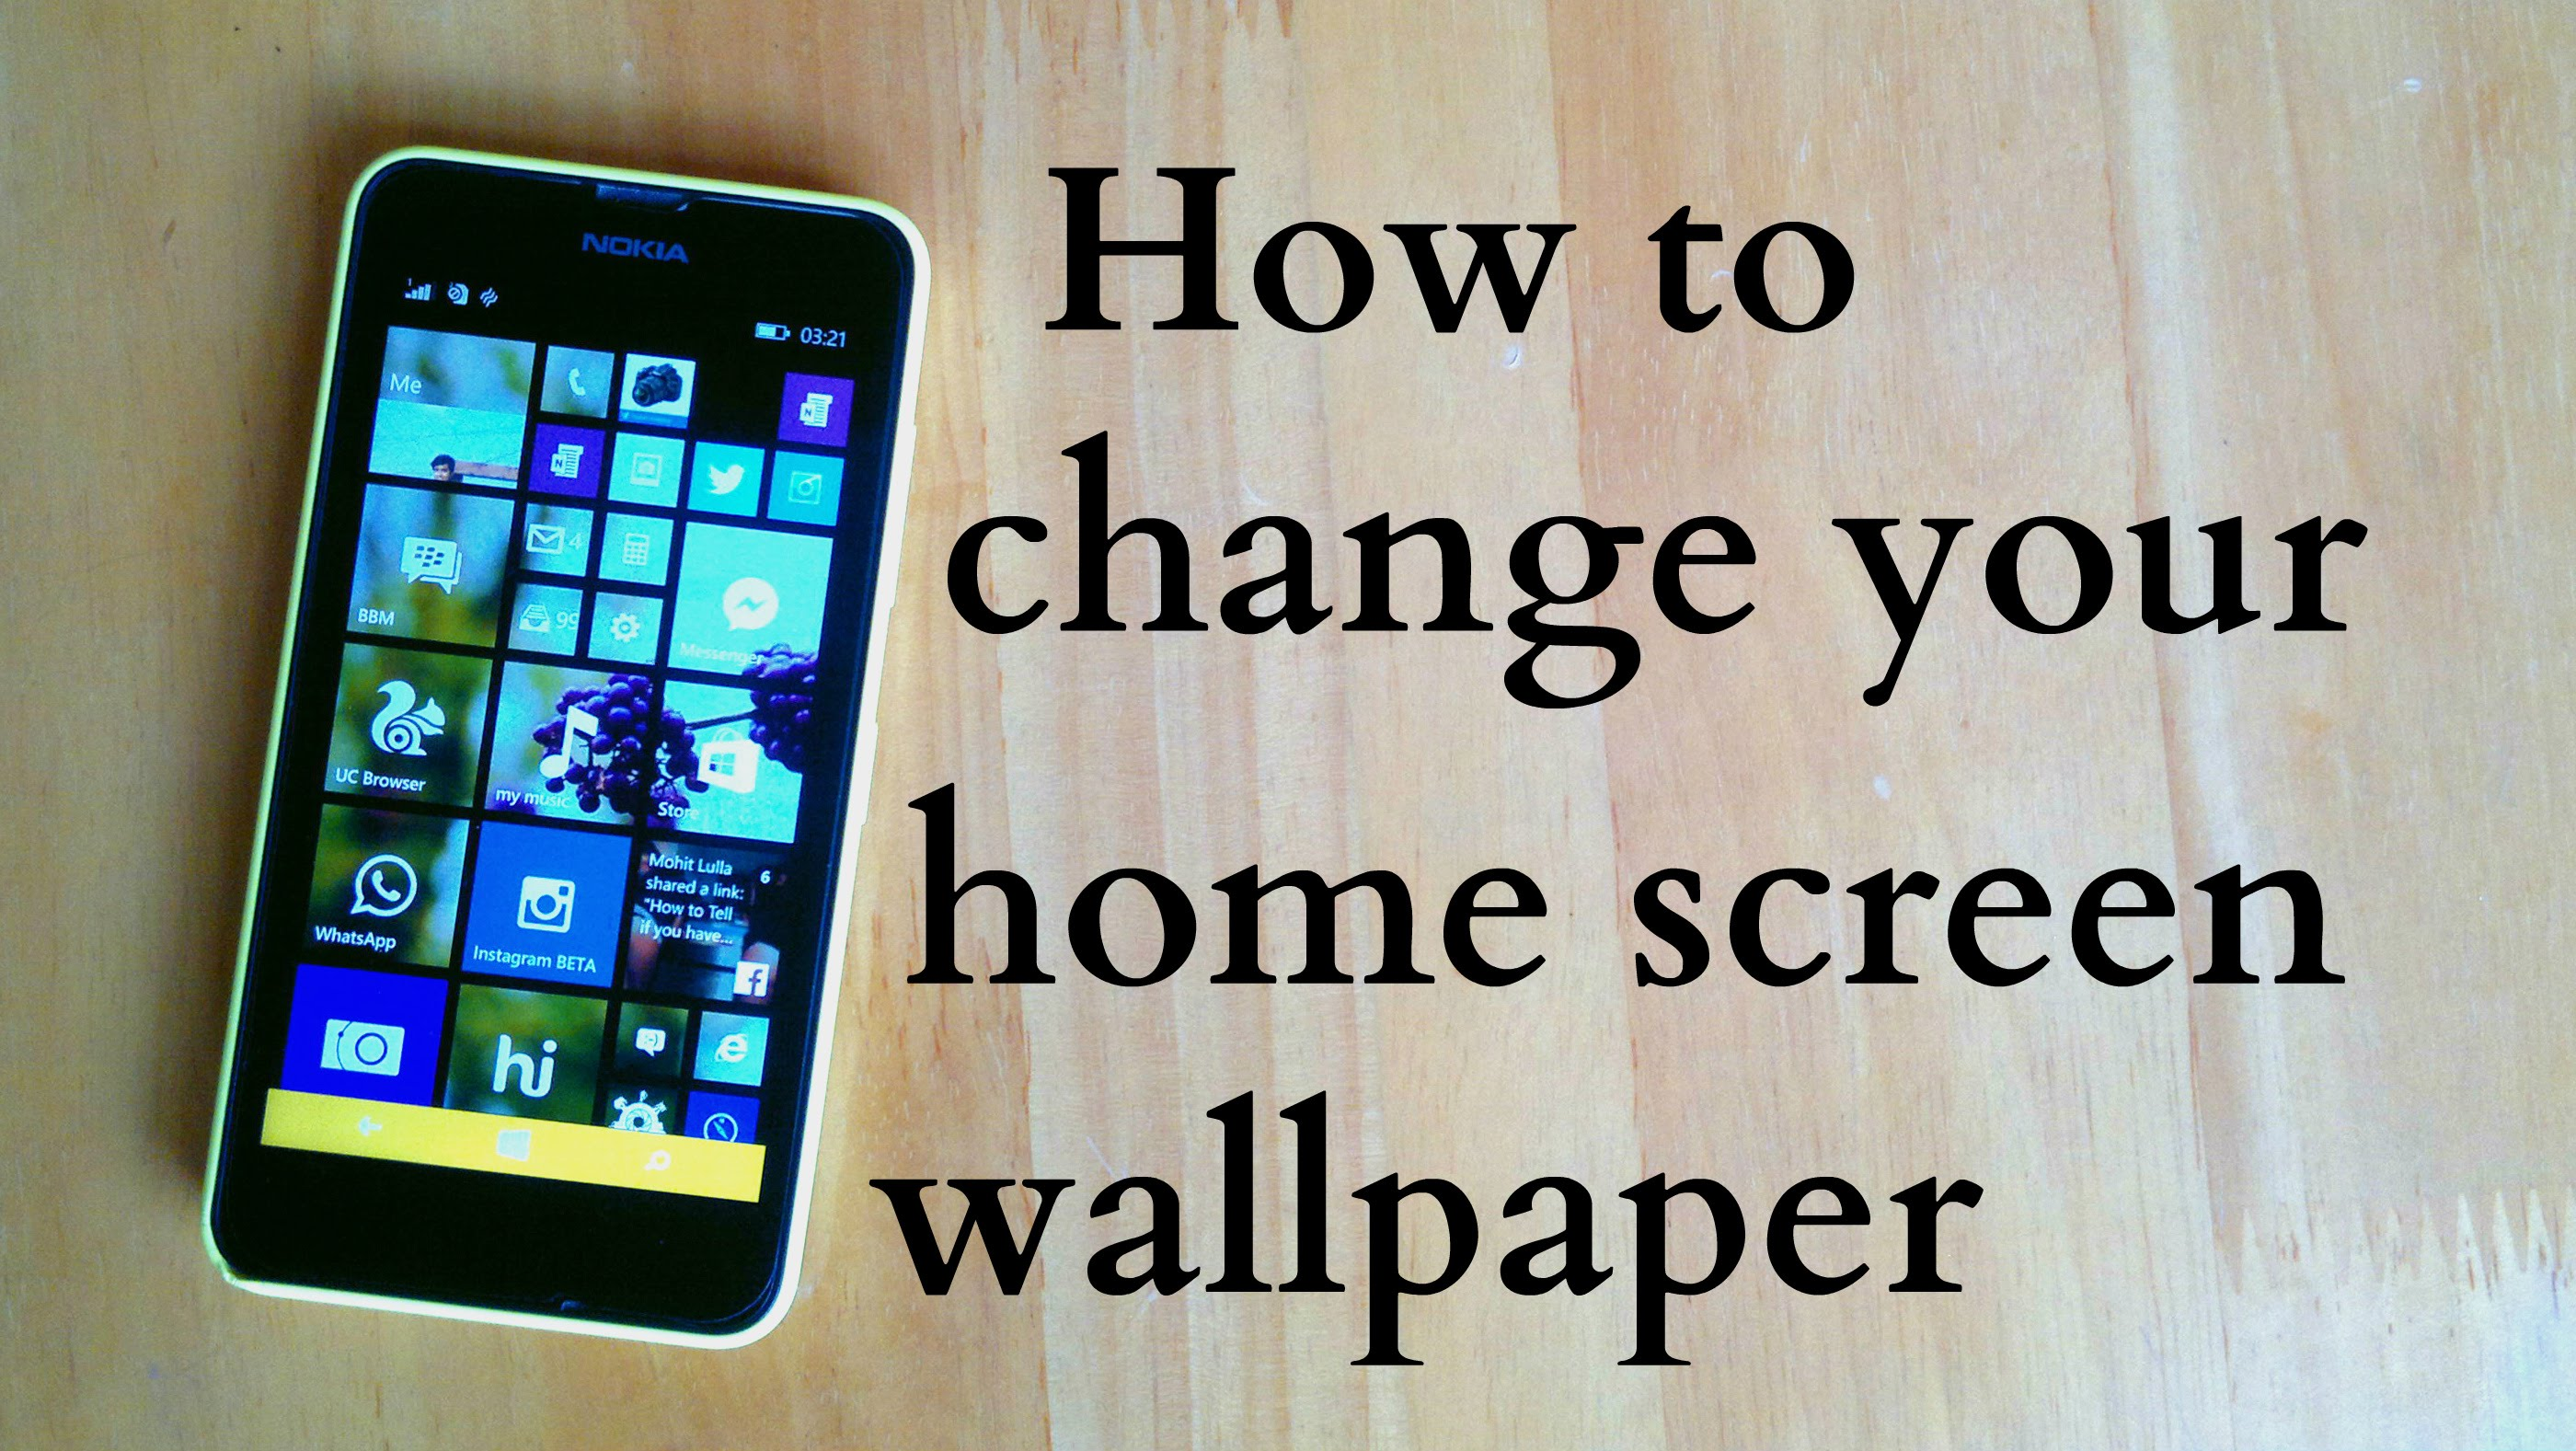 How to change your Home screen wallpaper in Windows 81 2800x1577